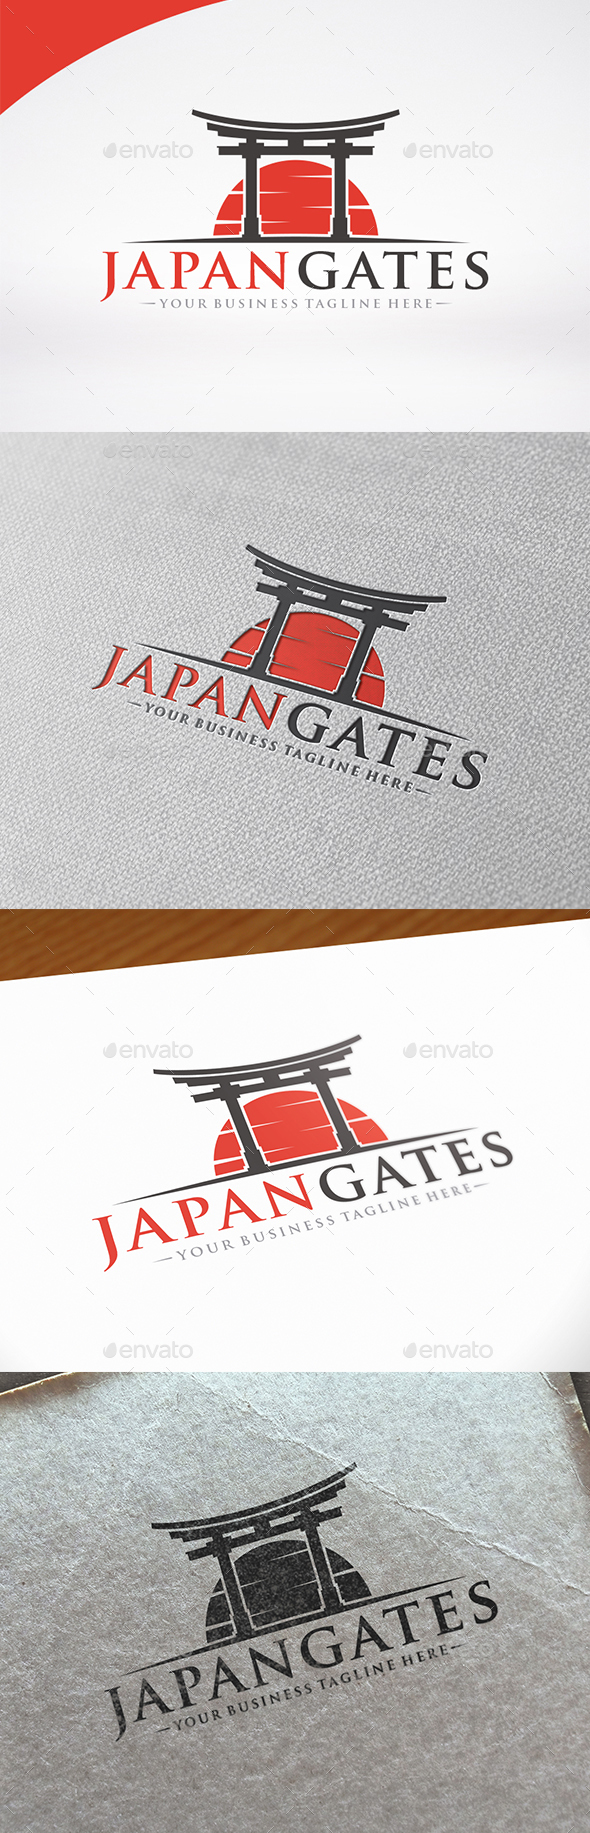 Japan Gate Logo Template